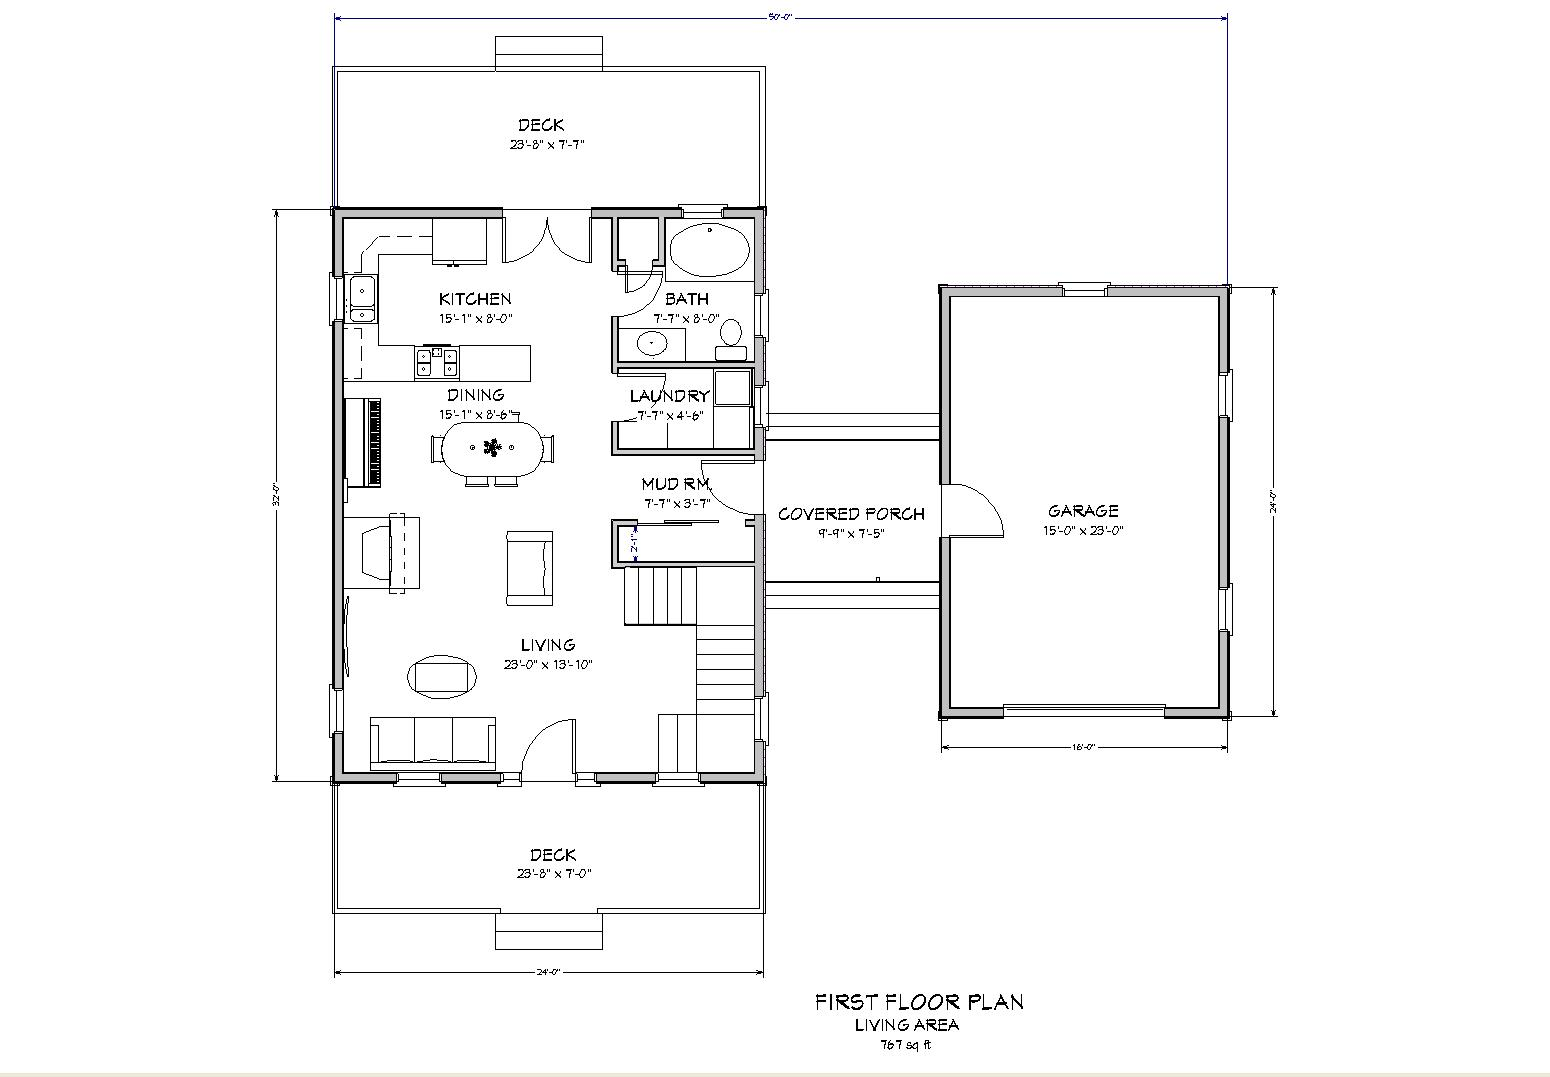 New england colonial house plans floor plans for New england colonial home plans